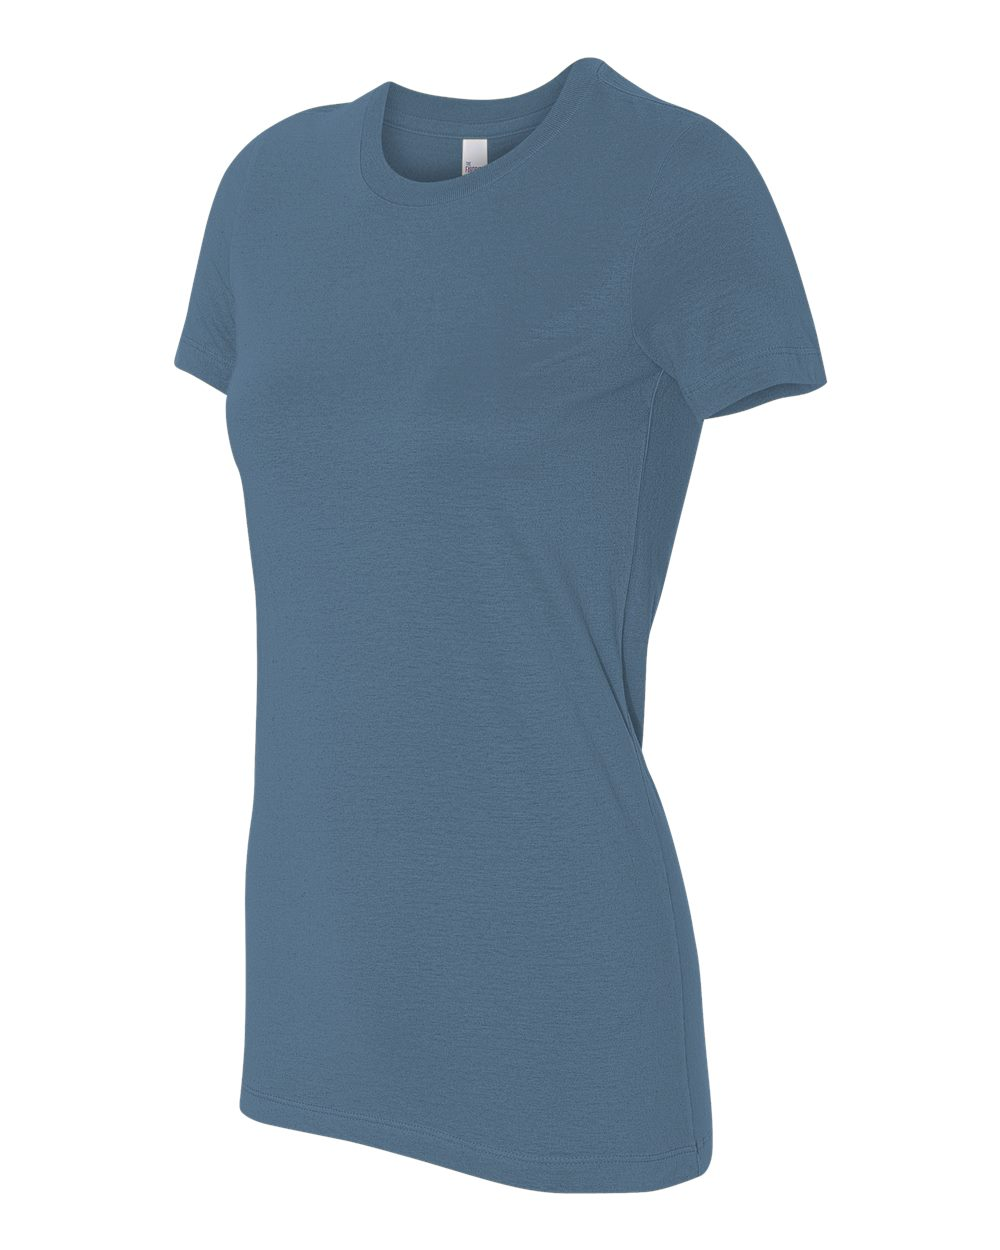 Bella-Canvas-Womens-The-Favorite-T-Shirt-6004-Size-S-2XL thumbnail 155